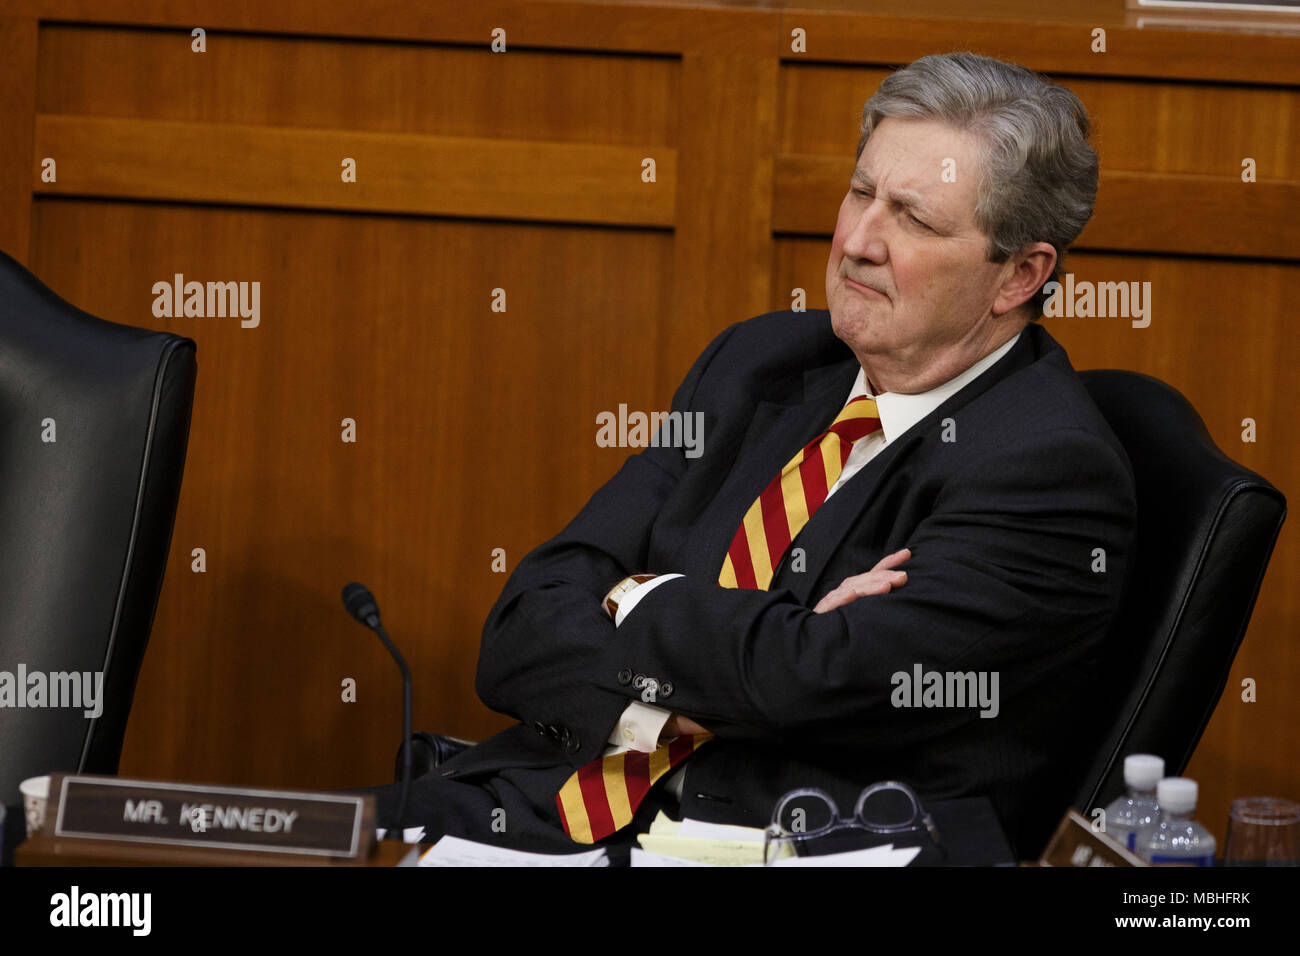 Washington, USA. 10th Apr, 2018. Senator John Kennedy, Republican of Louiasana listens Facebook CEO Mark Zuckerberg testifies before the United States Senate on Capitol Hill in Washington, DC on April 10, 2018. Credit: The Photo Access/Alamy Live News - Stock Image